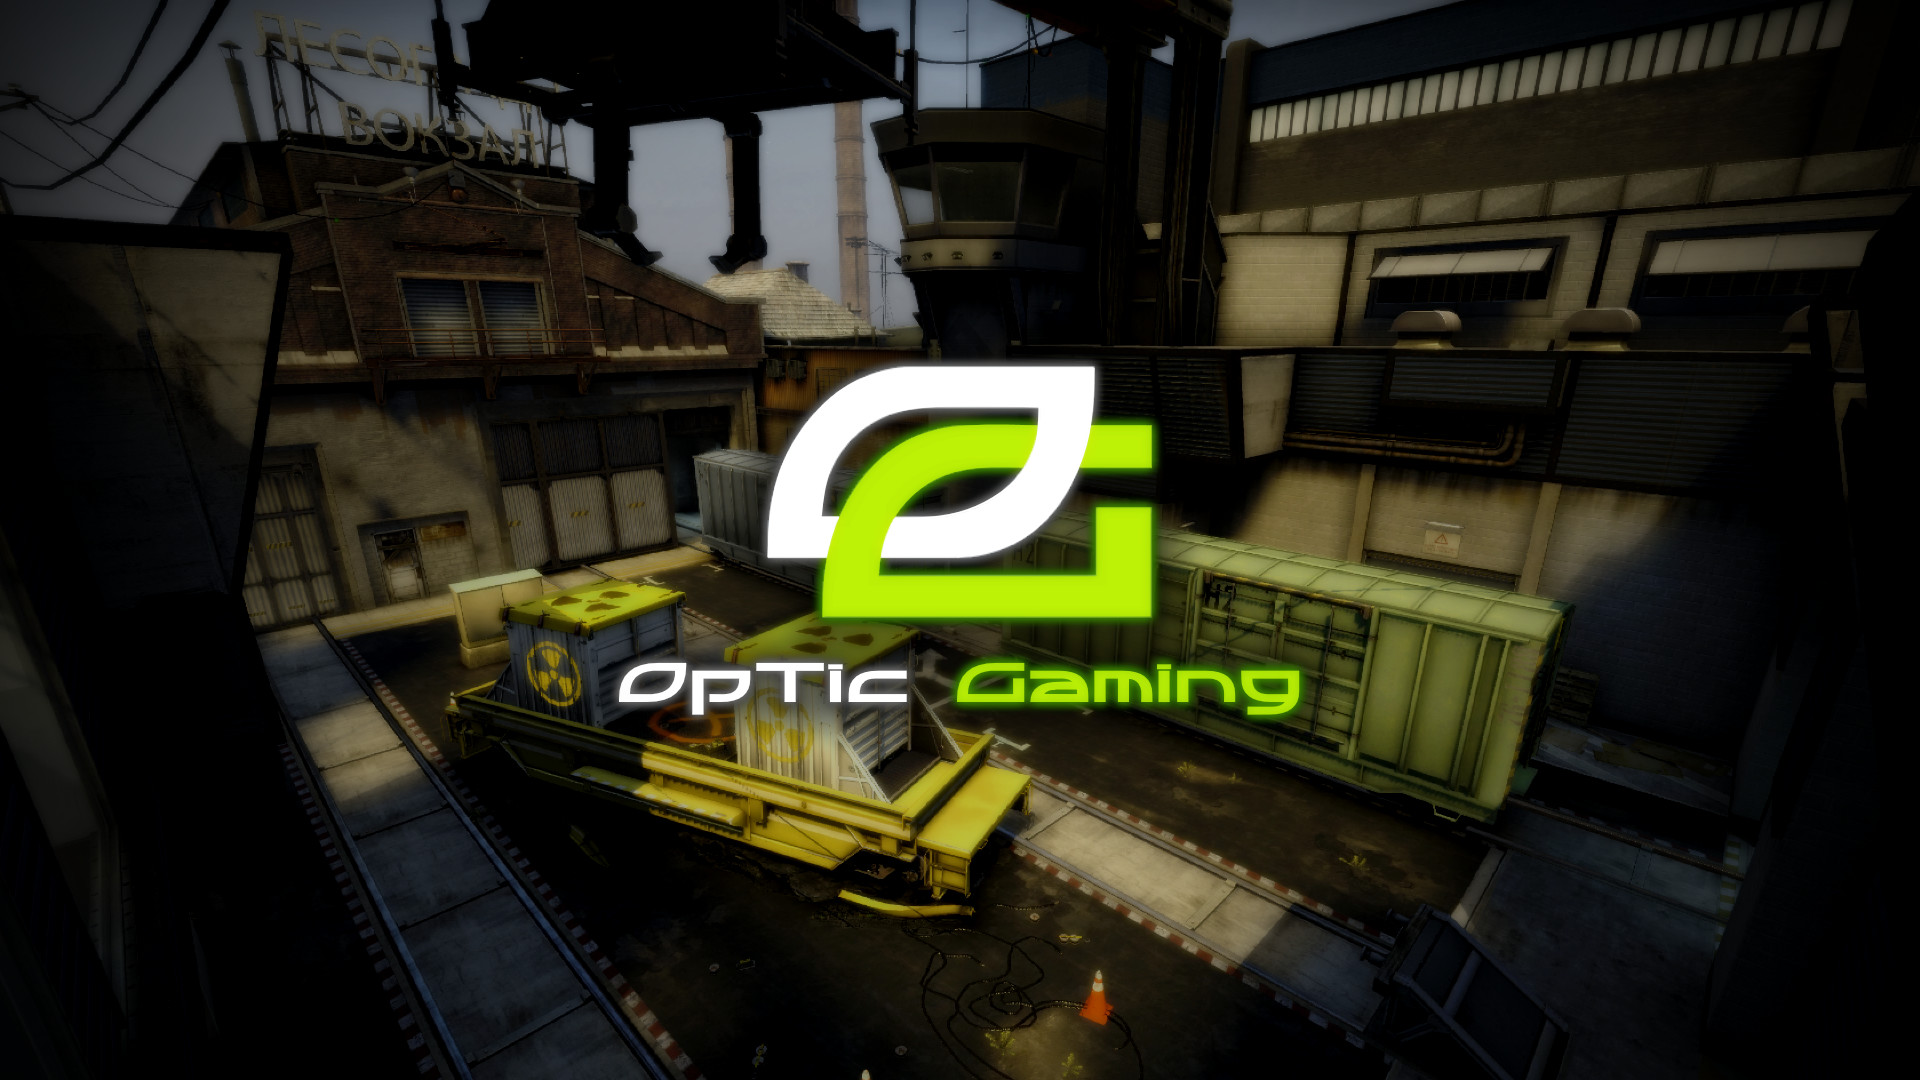 Optic Gaming Wallpaper 2018 (81+ images)